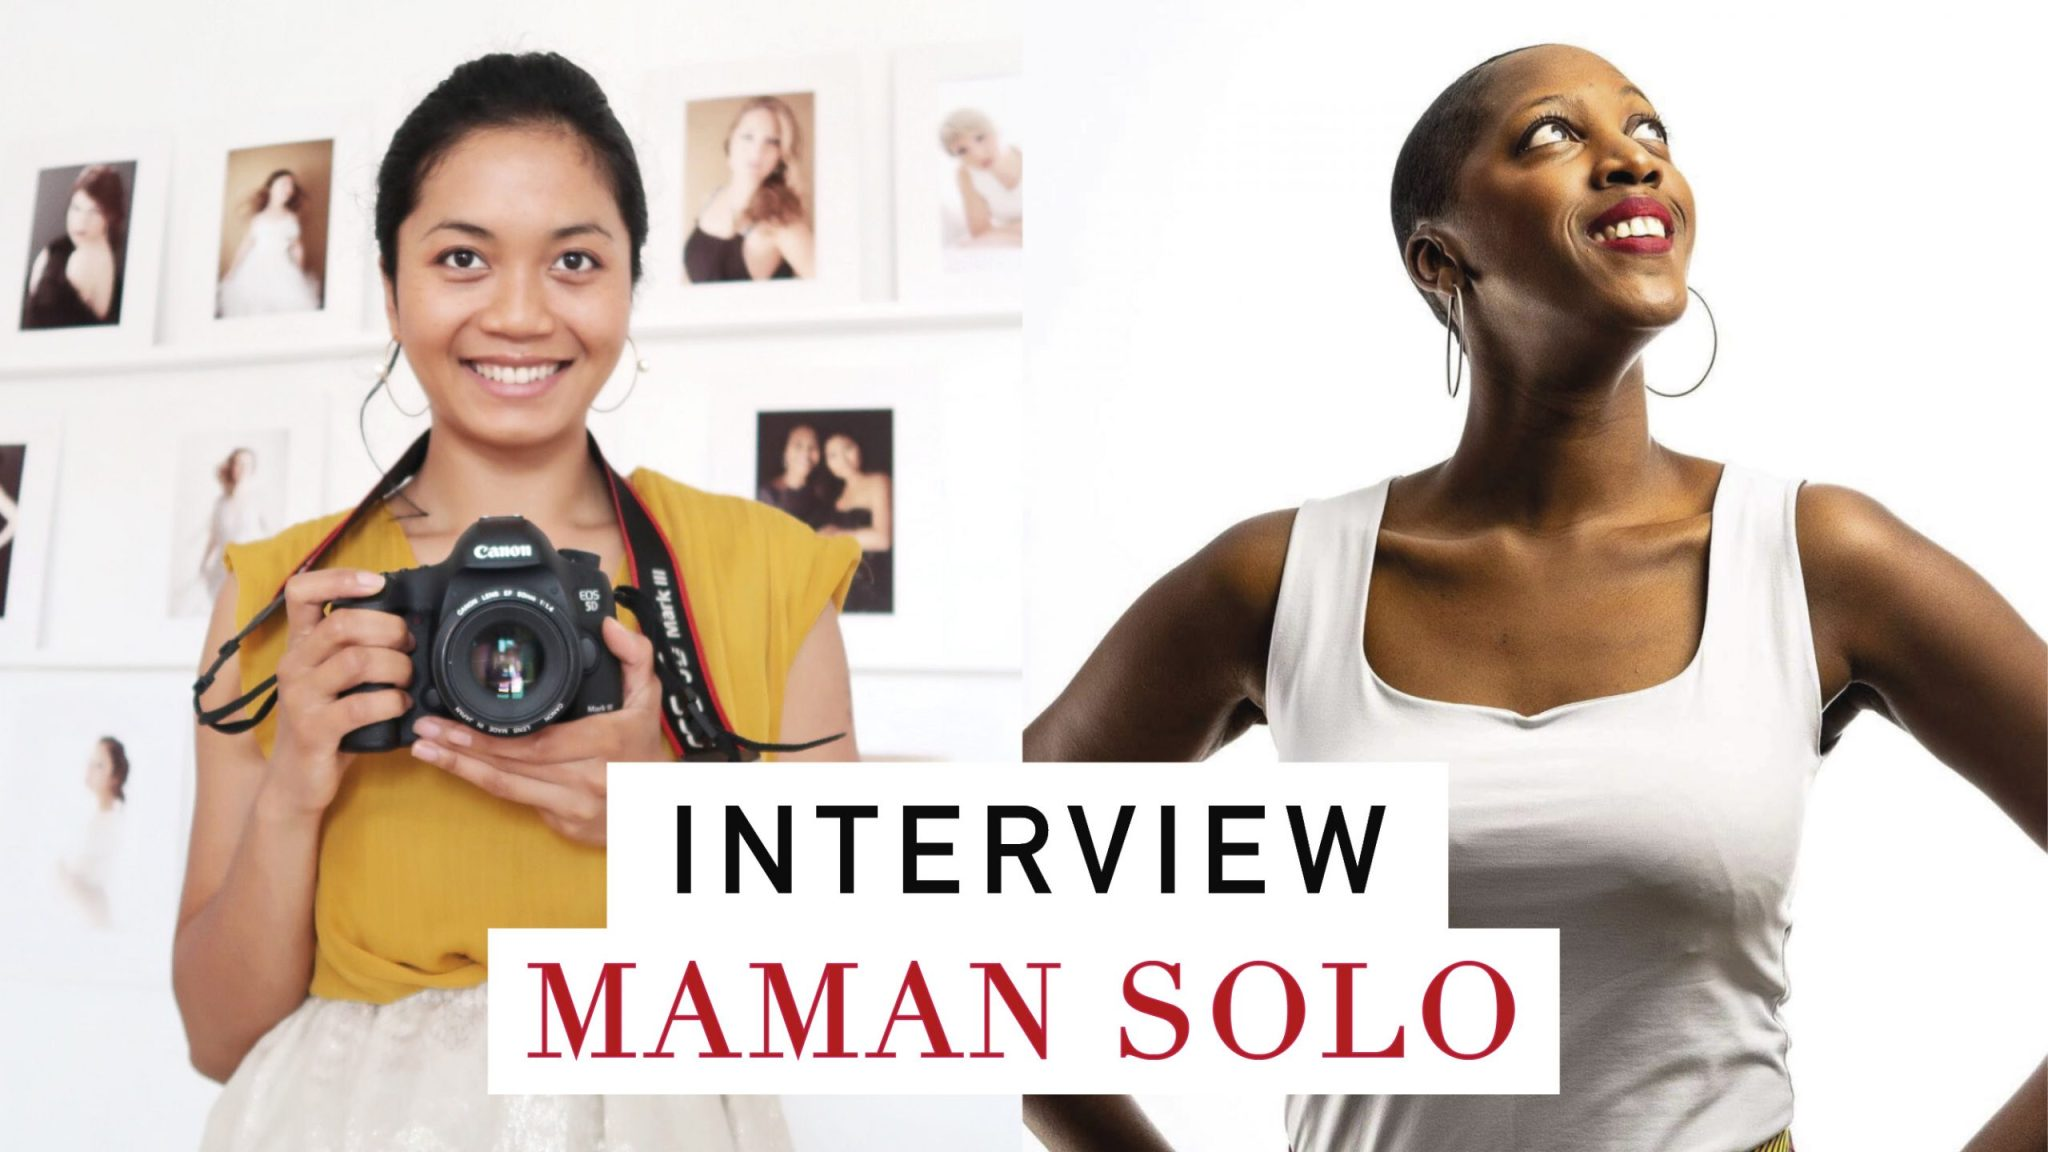 interview maman solo